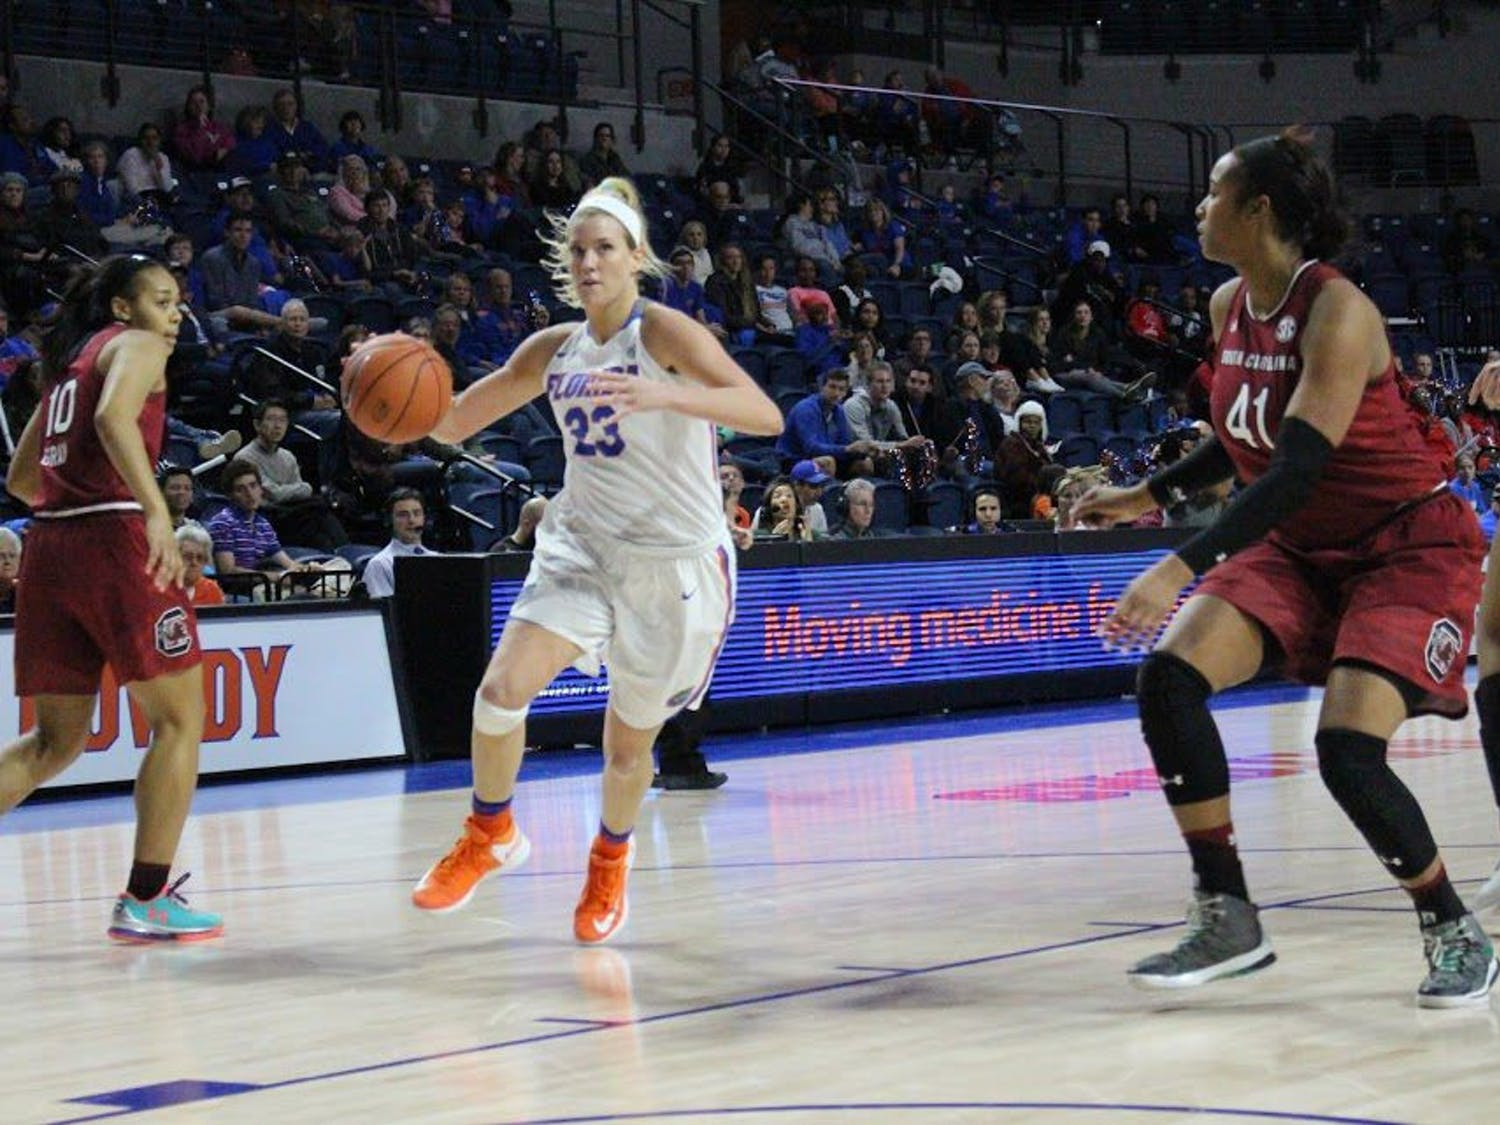 UF forward Brooke Copeland dribbles during Florida's 81-62 loss to South Carolina on Jan. 8, 2017, in the O'Connell Center.